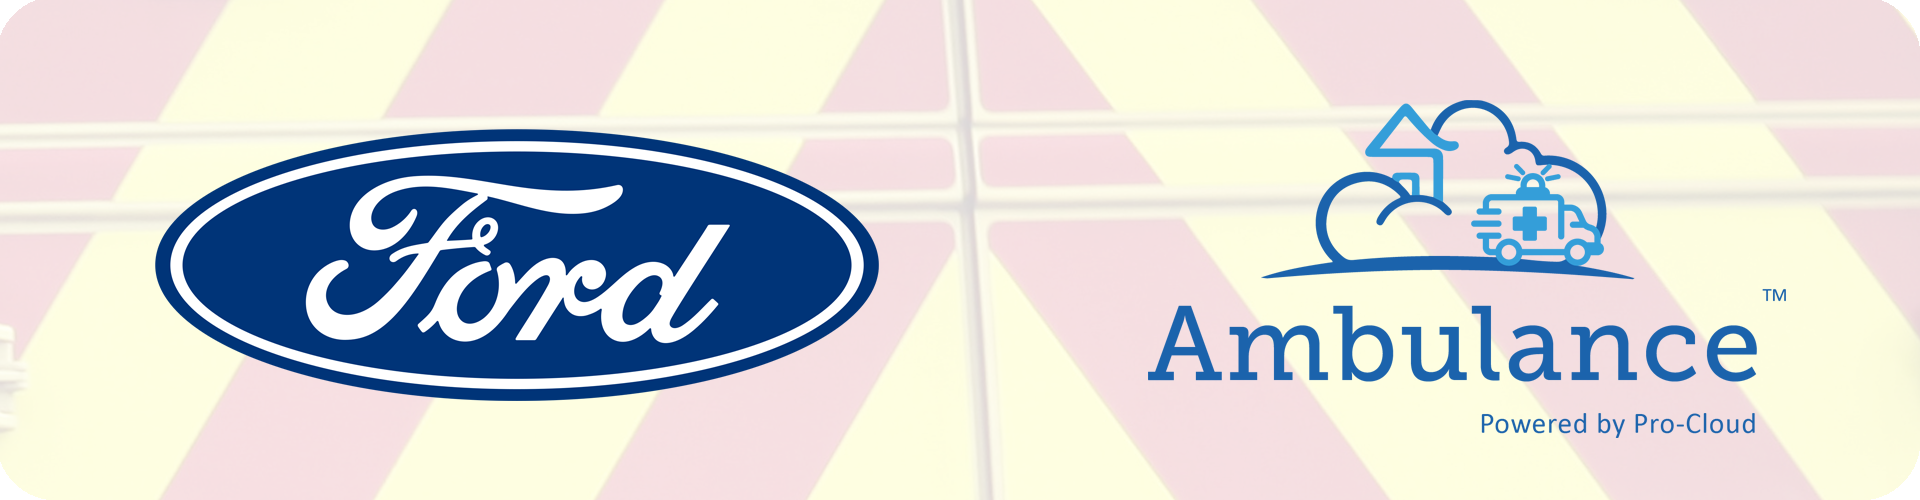 ford and pro-cloud ambulance logos on emergency stripes